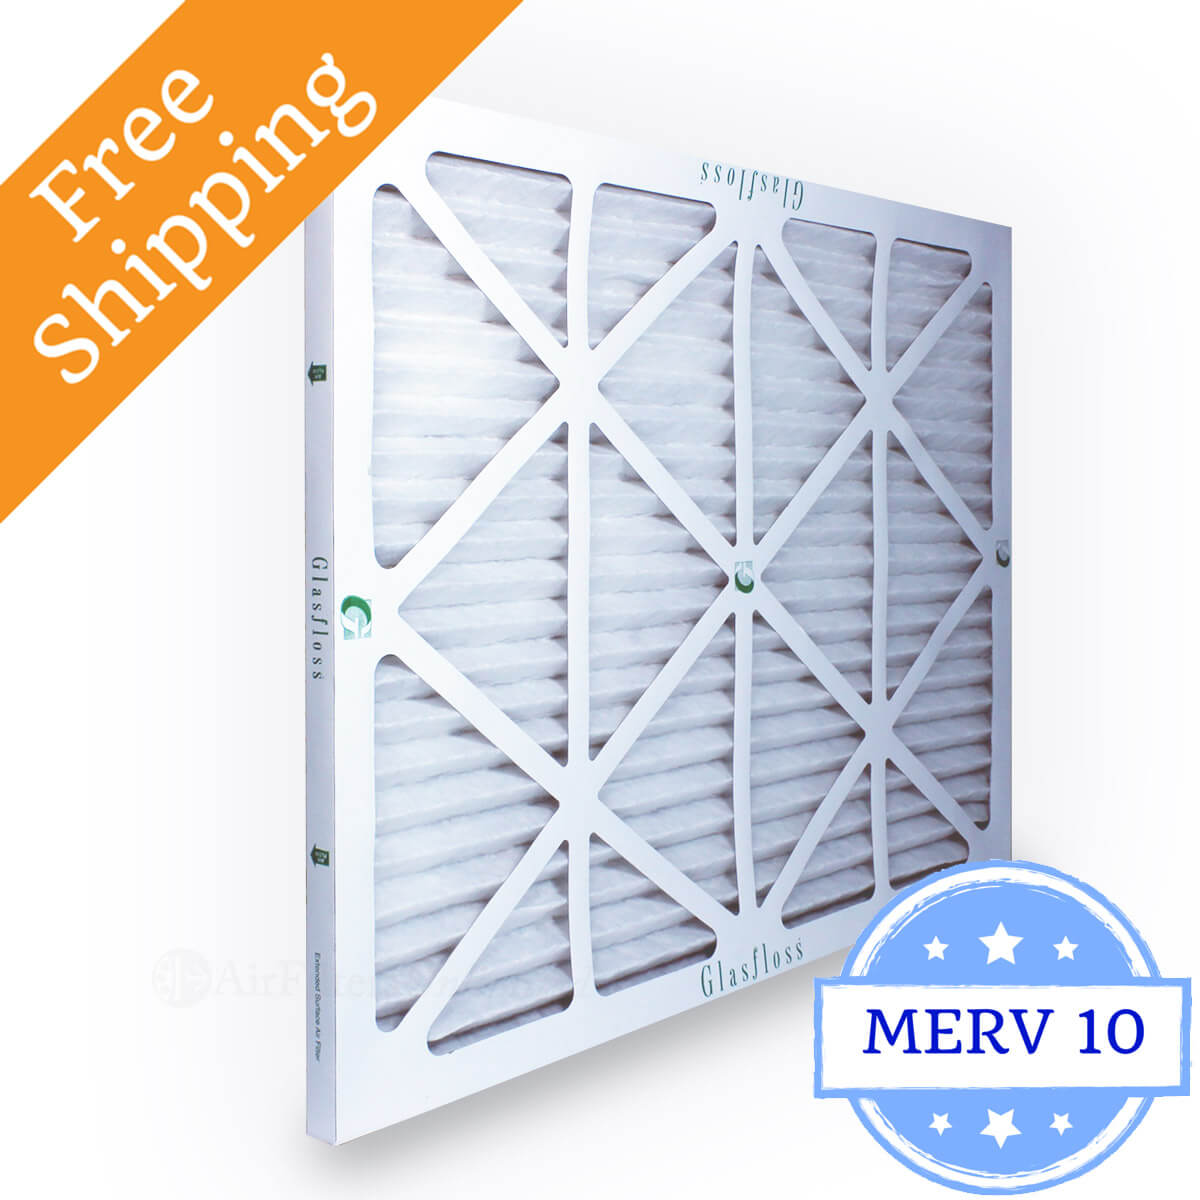 Glasfloss 15x20x1 Air Filter ZL Series